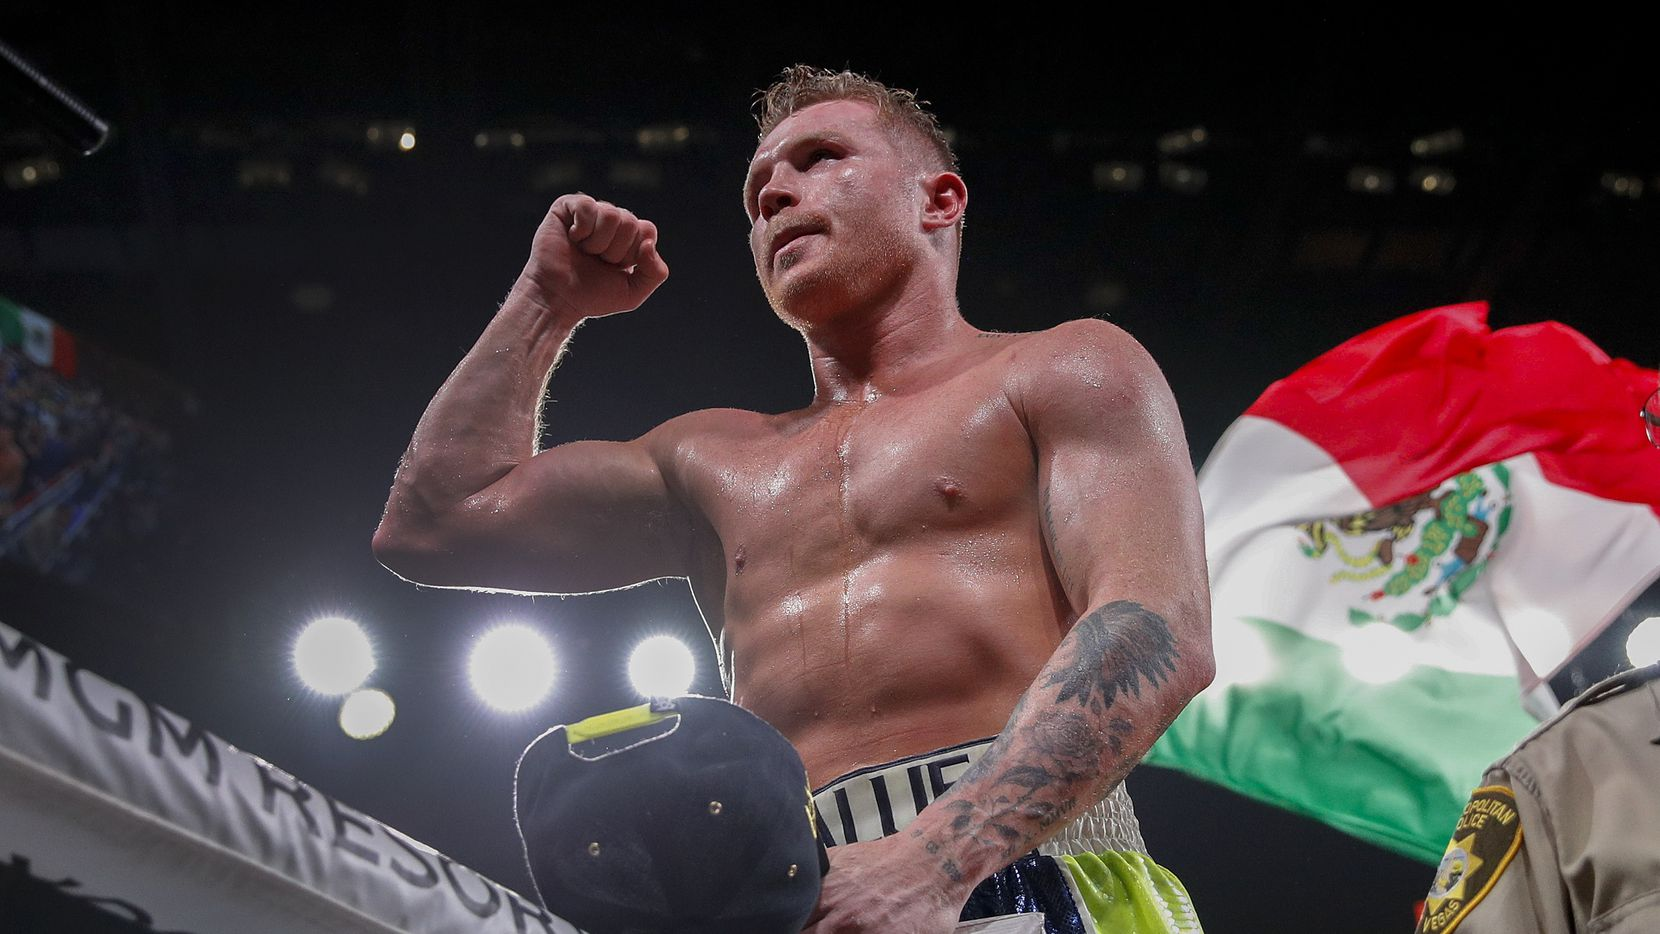 In this Saturday, Nov. 2, 2019 file photo, Canelo Alvarez celebrates after defeating Sergey Kovalev by knockout in a light heavyweight WBO title bout, in Las Vegas. Alvarez will return to the ring in a world super-middleweight title fight against Britain's Callum Smith on Dec. 19, the boxers announced early Wednesday, Nov. 18, 2020.